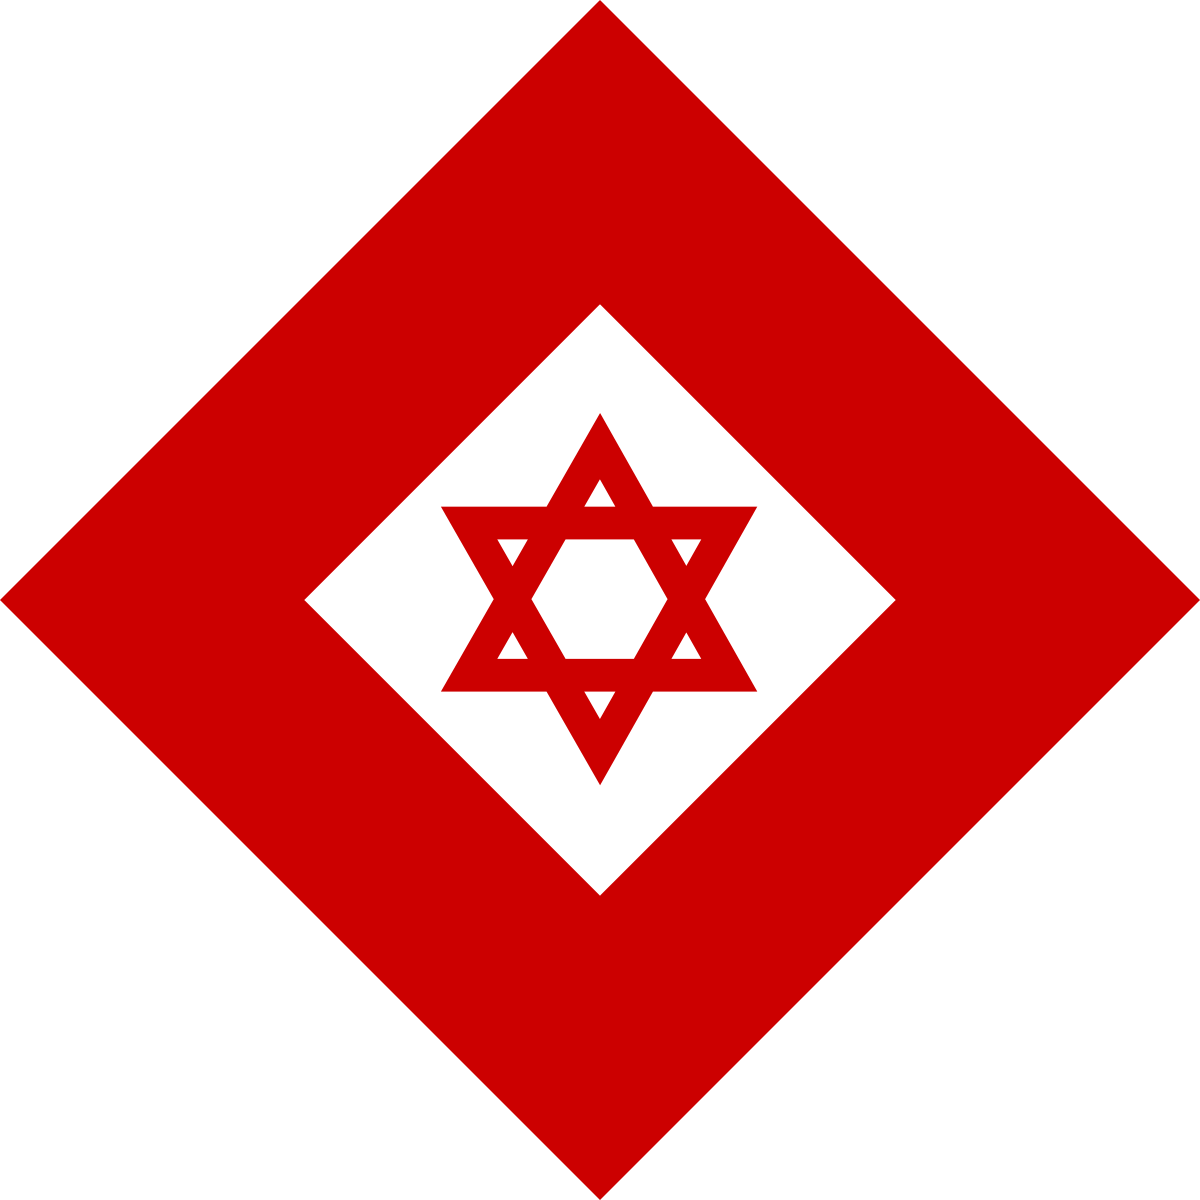 Red cross out clipart clip art library stock Magen David Adom - Wikipedia clip art library stock